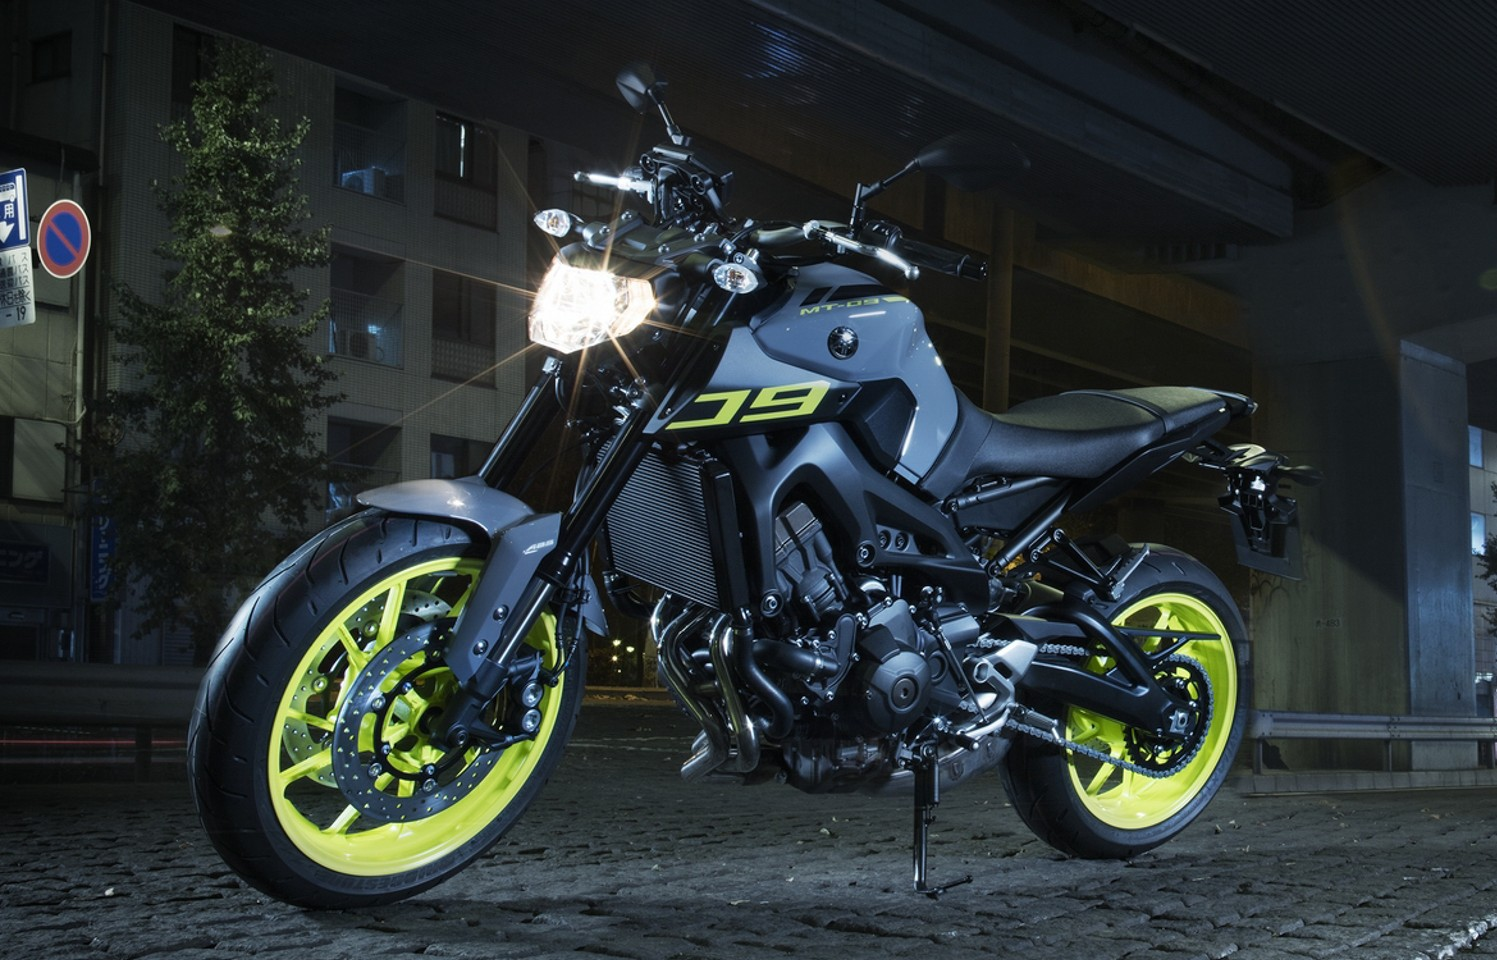 Image result for yamaha mt-09 2017